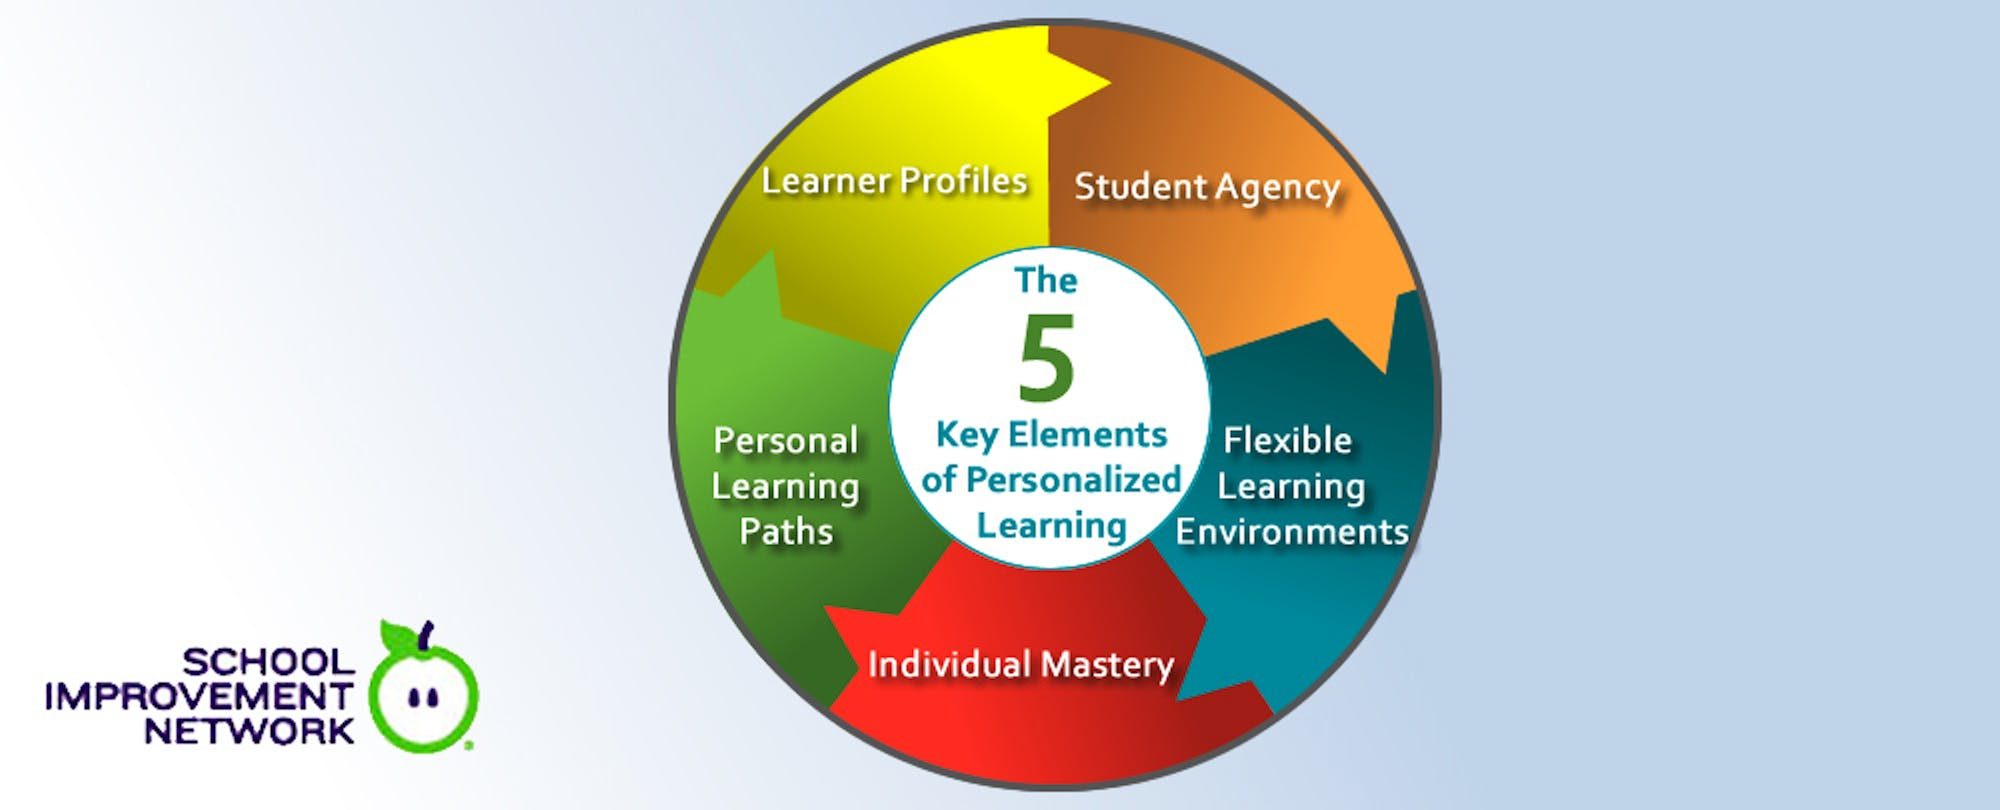 Five Key Elements of Personalized Learning